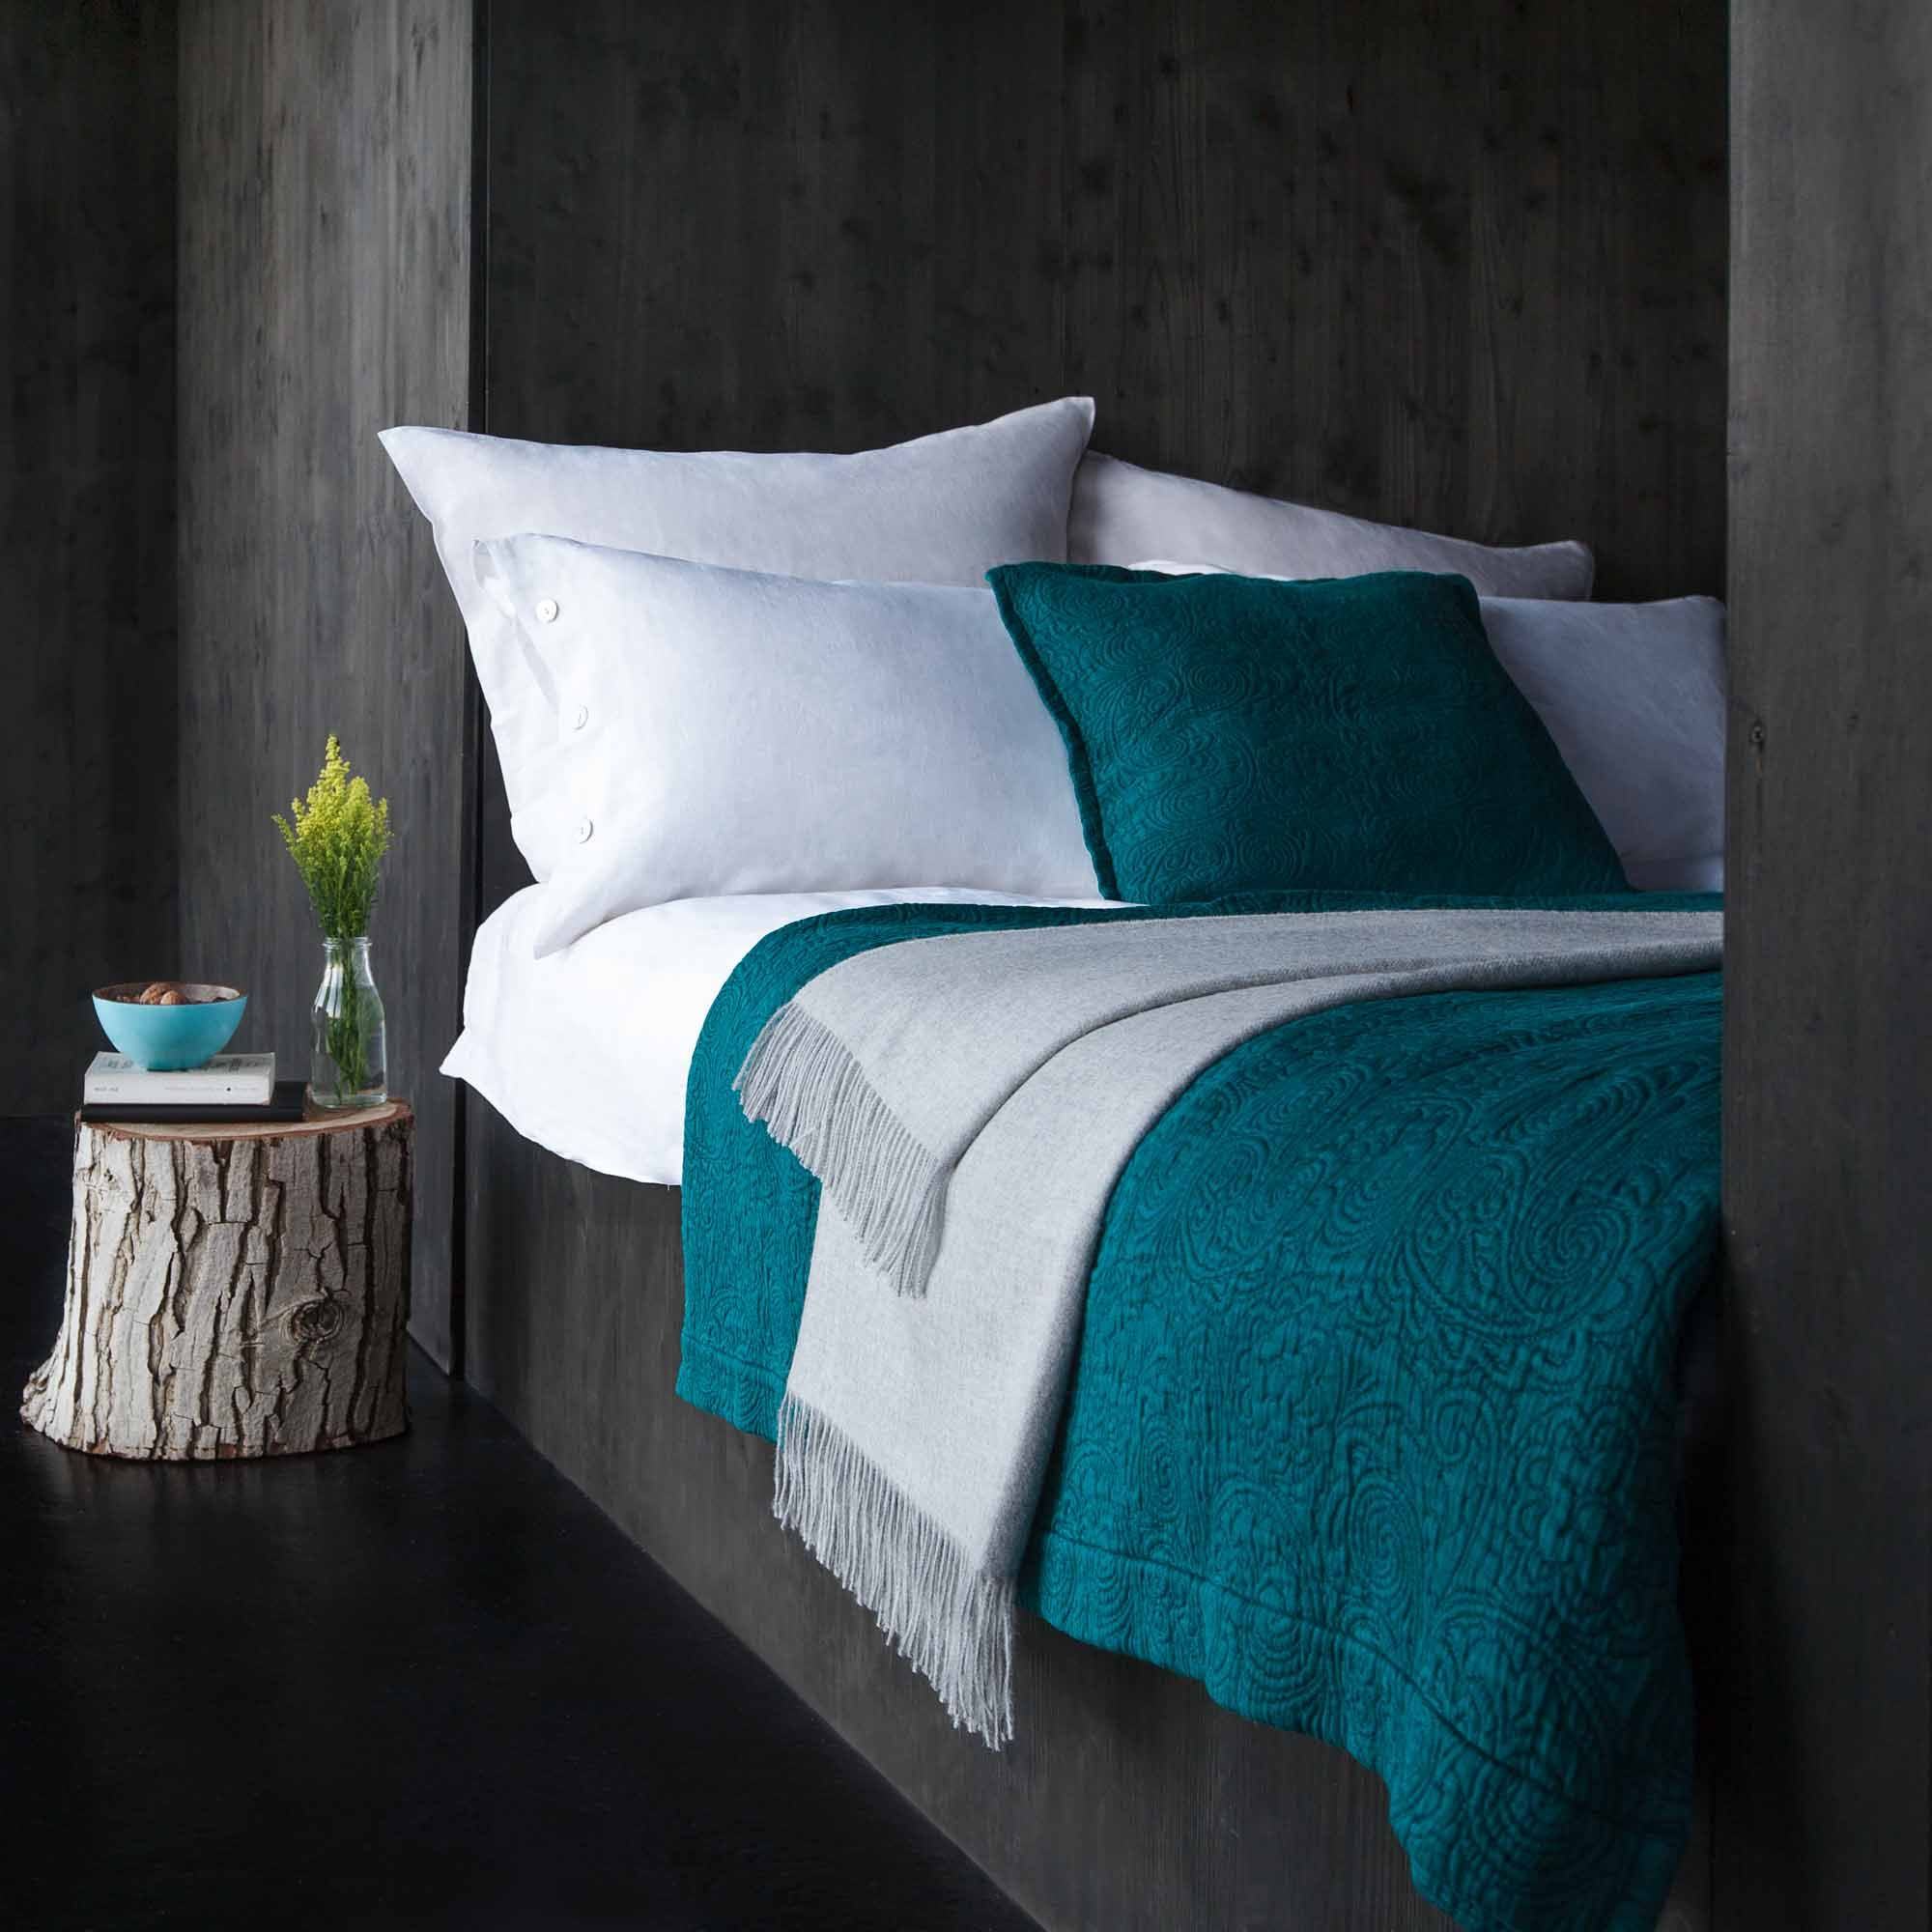 Teal and grey bedroom tones urbanara teba teal for Wohnungseinrichtung farben